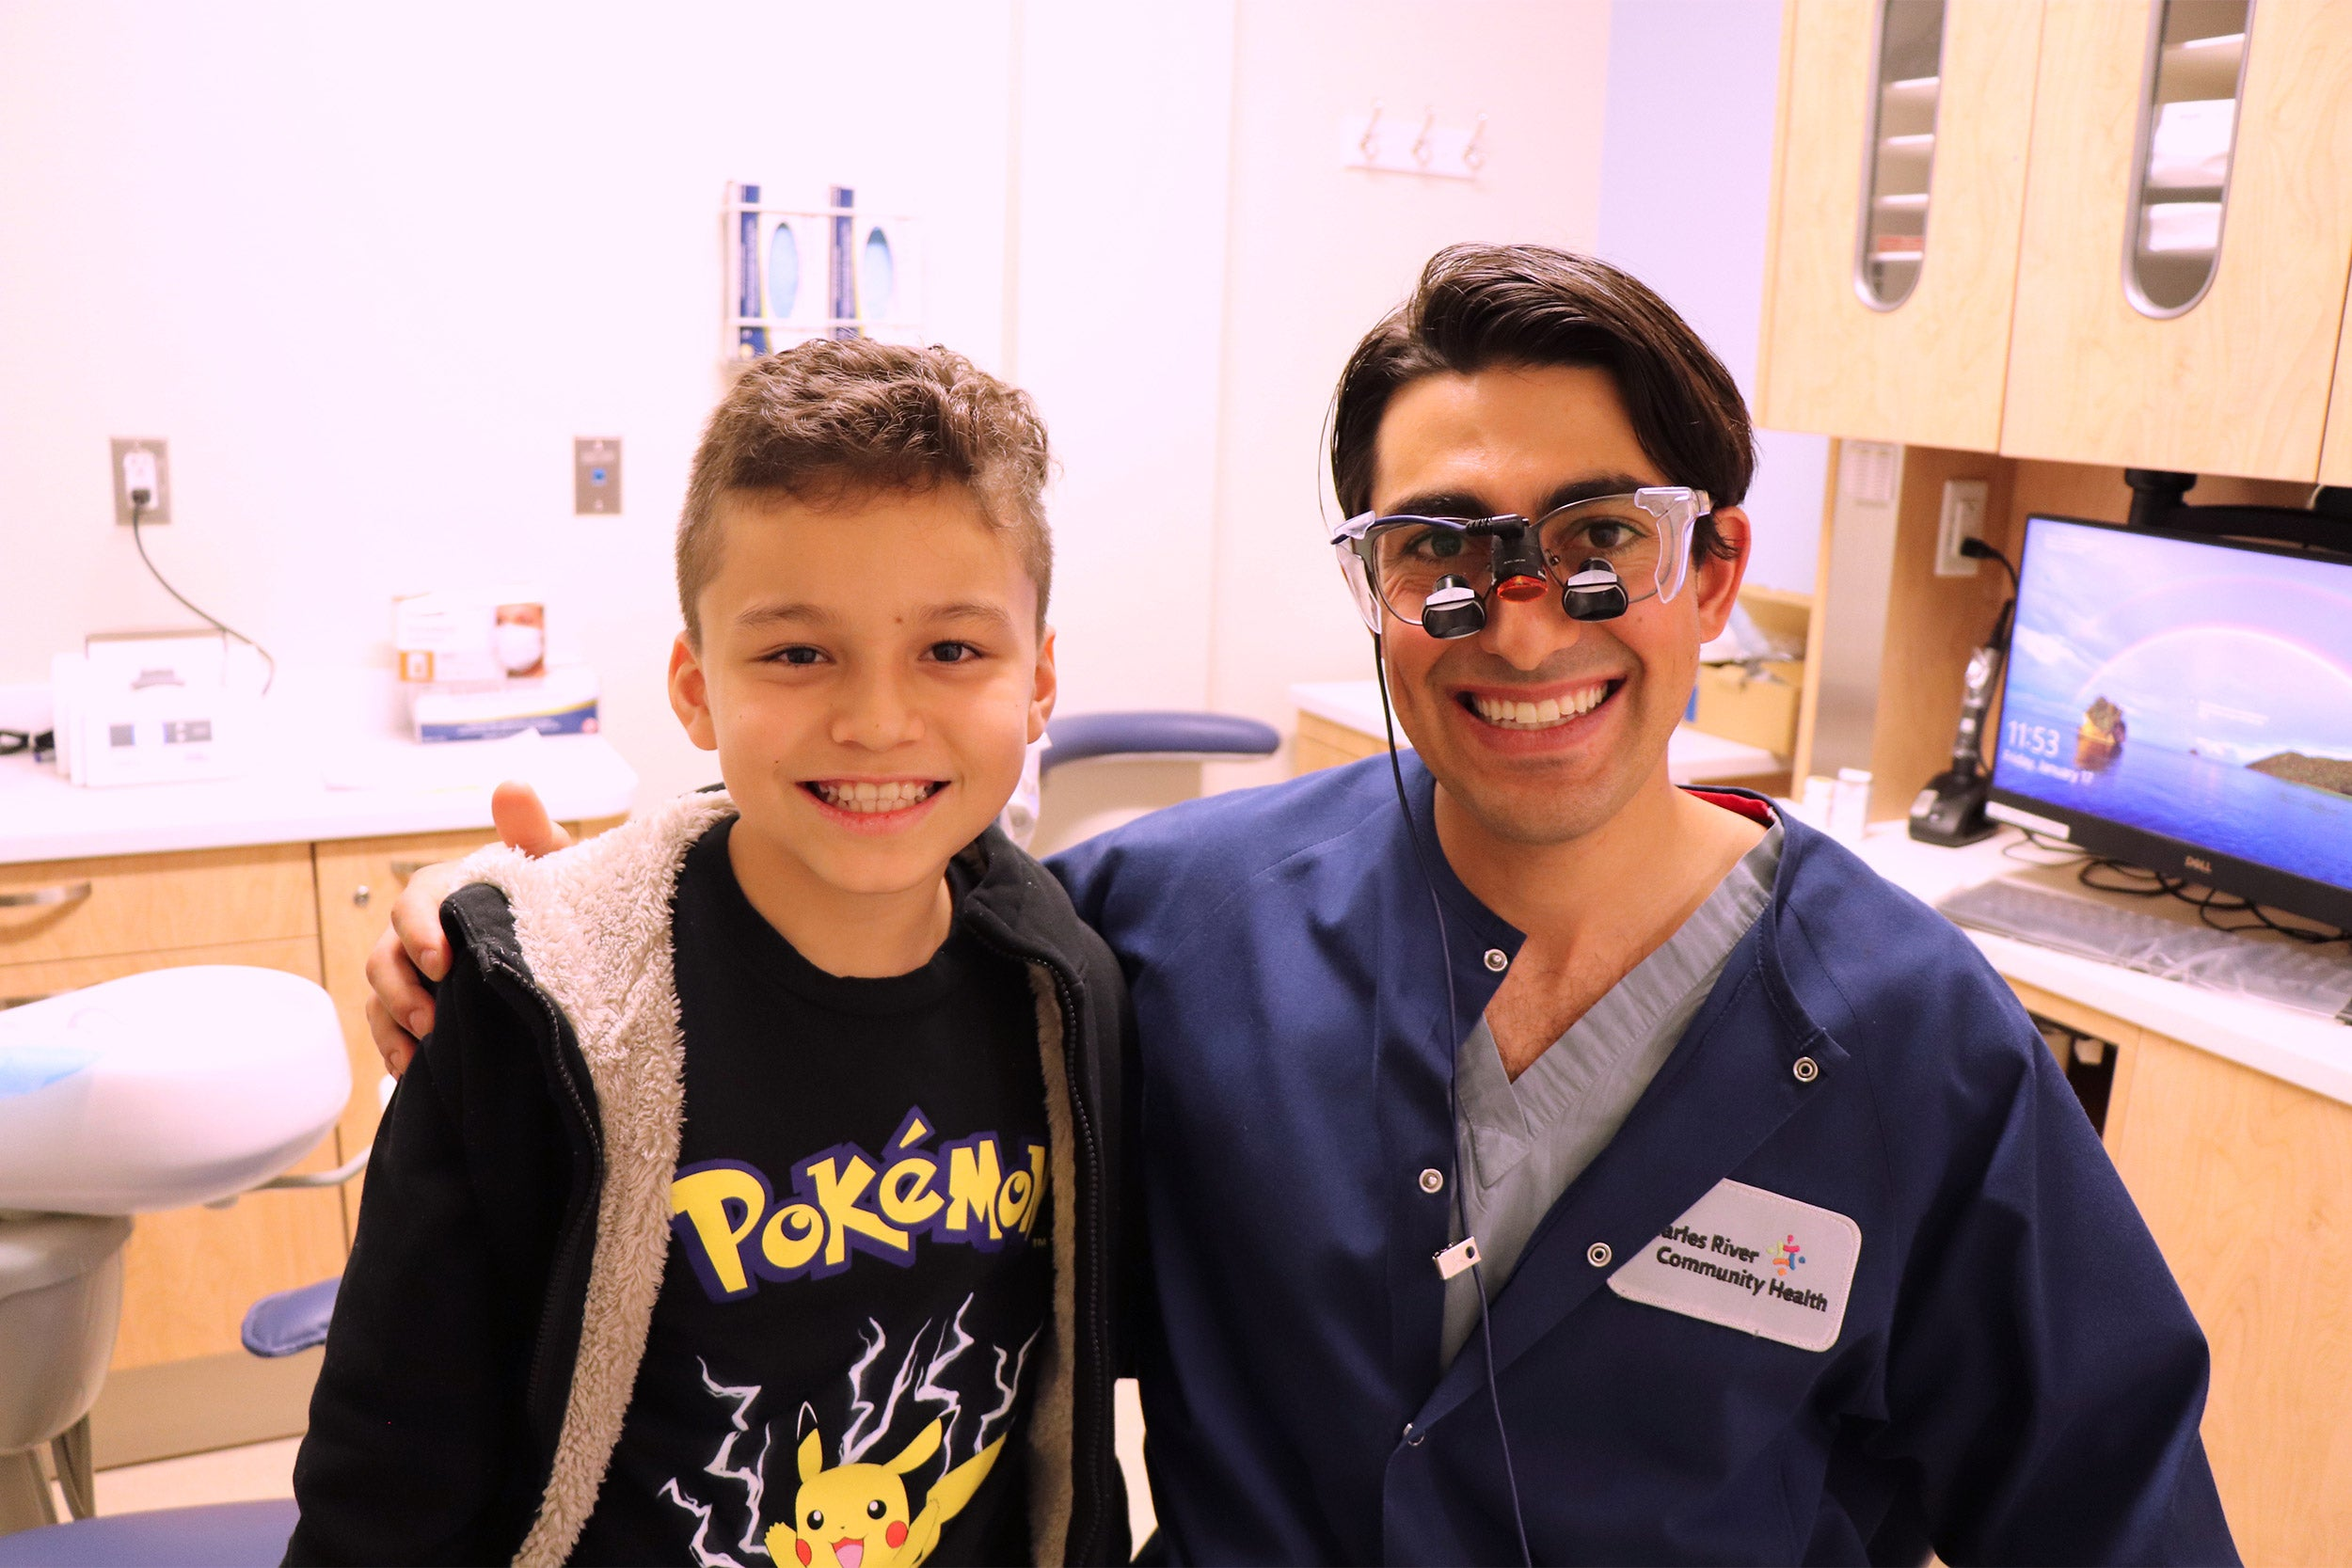 A young boy and his dentist.